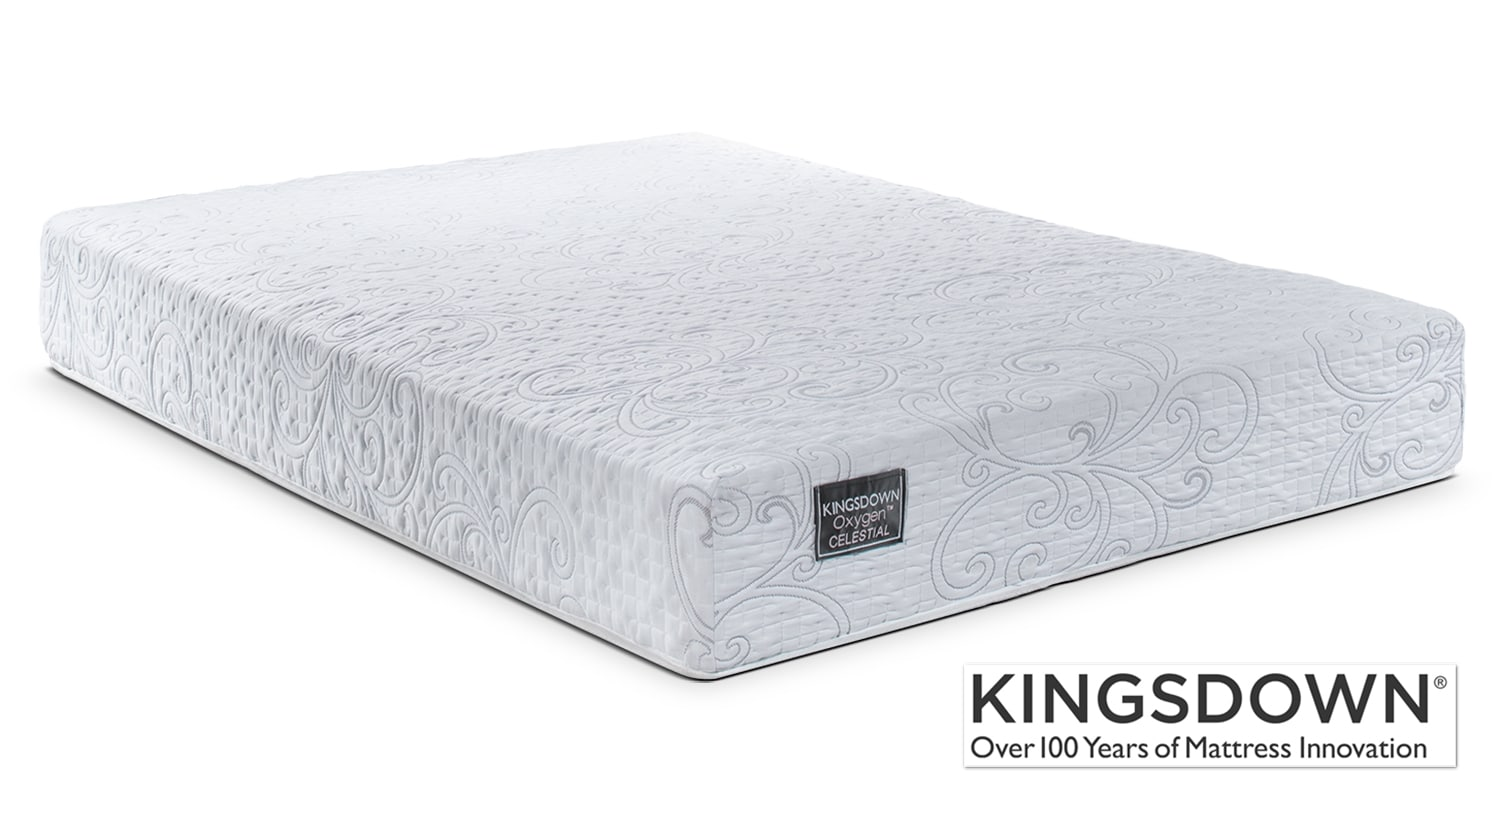 Mattresses and Bedding - Kingsdown Celestial Queen Mattress